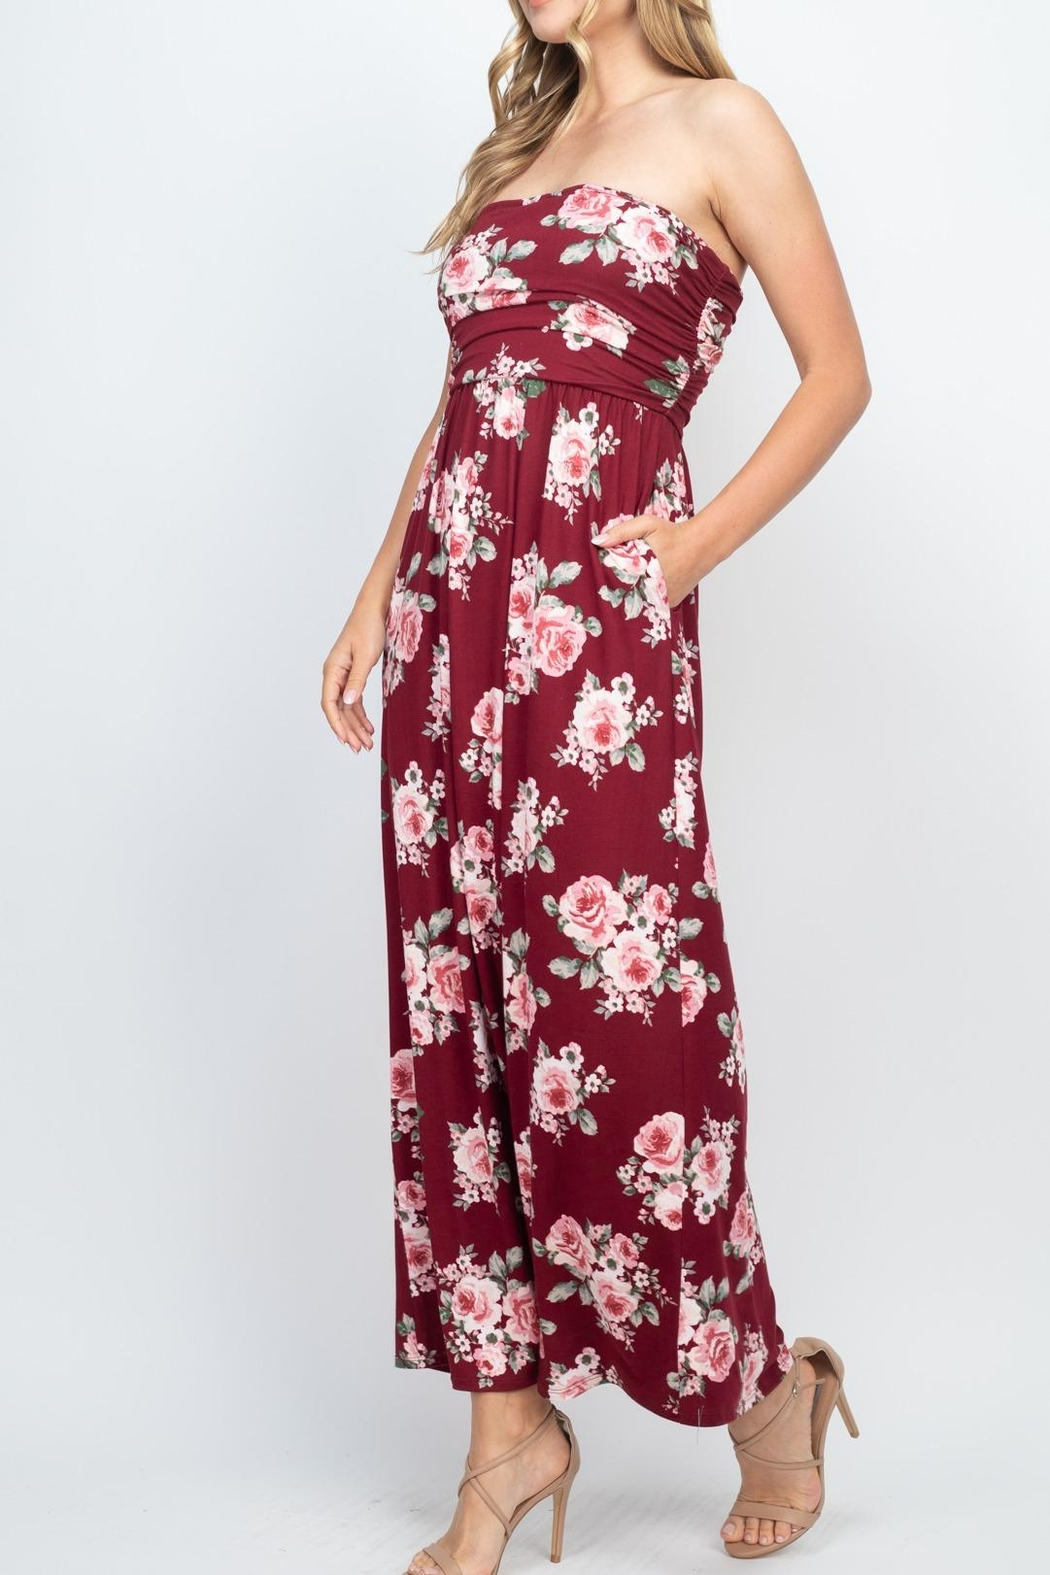 Riah Fashion Tube-Top-Floral-Pocket-Maxi-Dress-With-Inside-Lining - Side Cropped Image